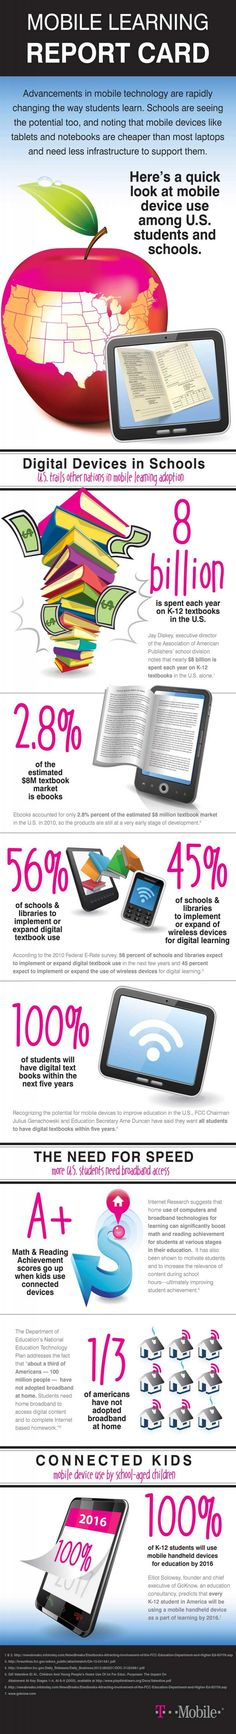 Mobile Learning Report Card #mlearning